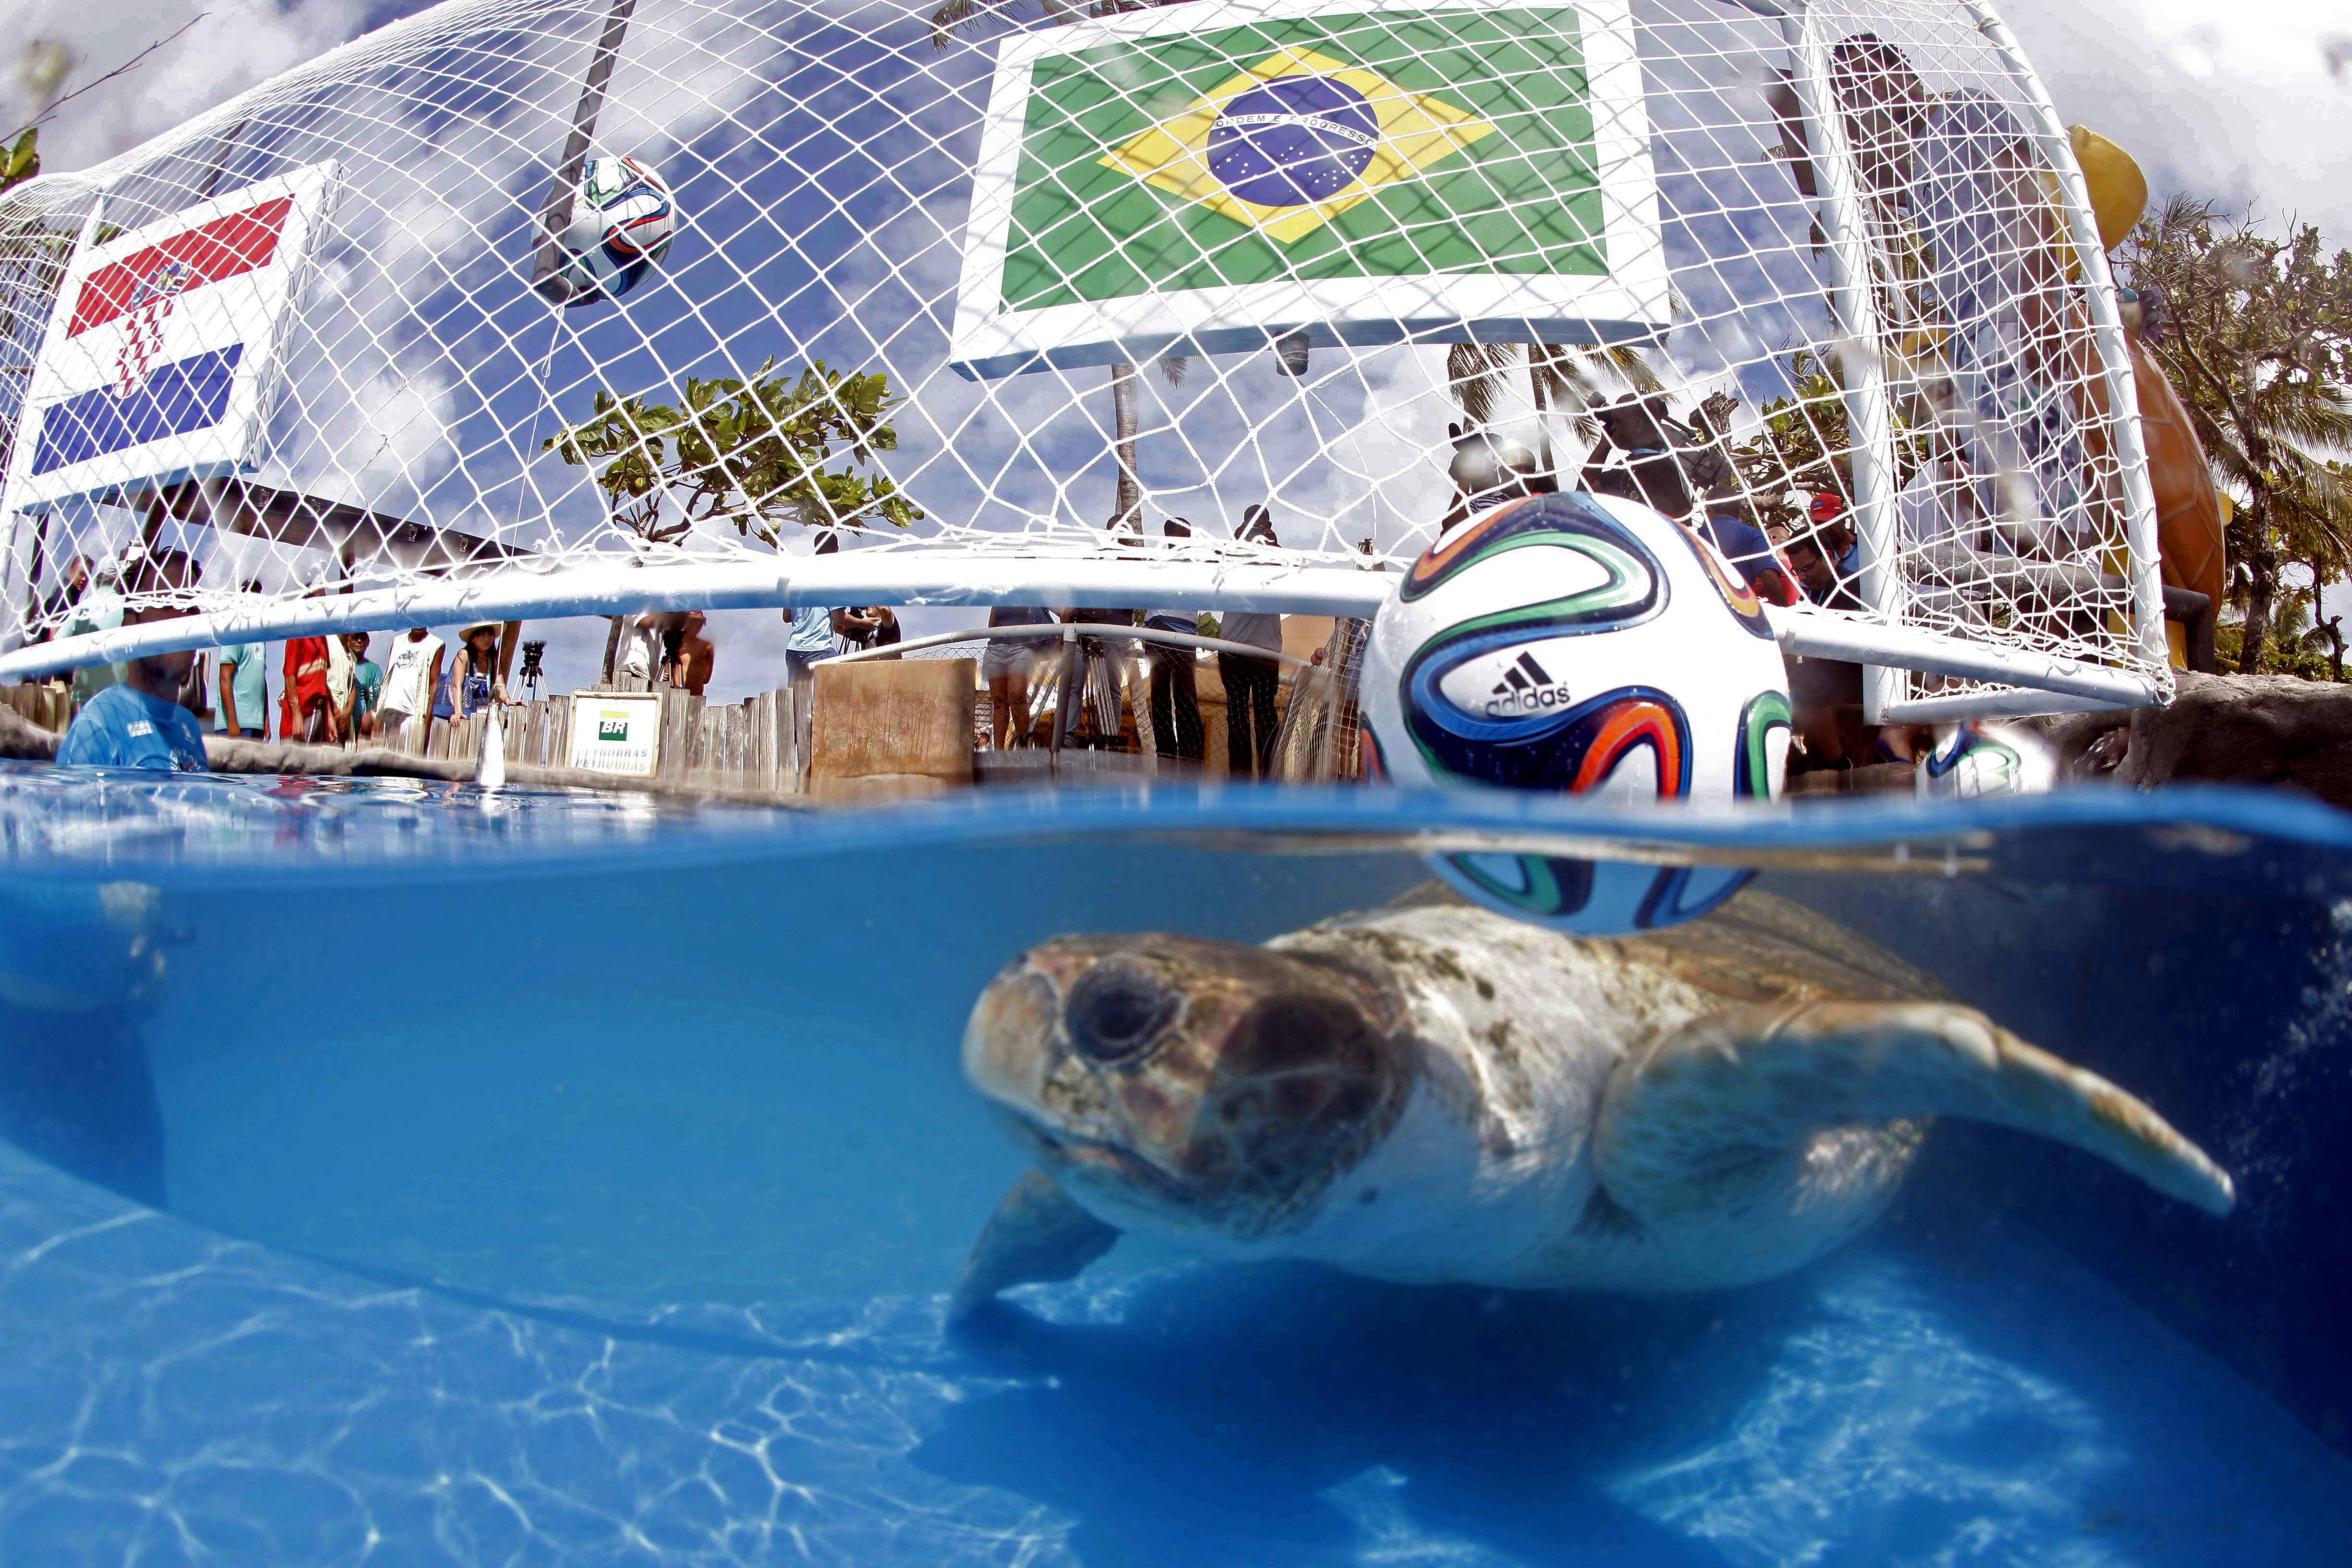 A turtle named Cabeção, or Big Head, swims in a pool in Praia do Forte, Brazil, Tuesday, June 10, 2014.